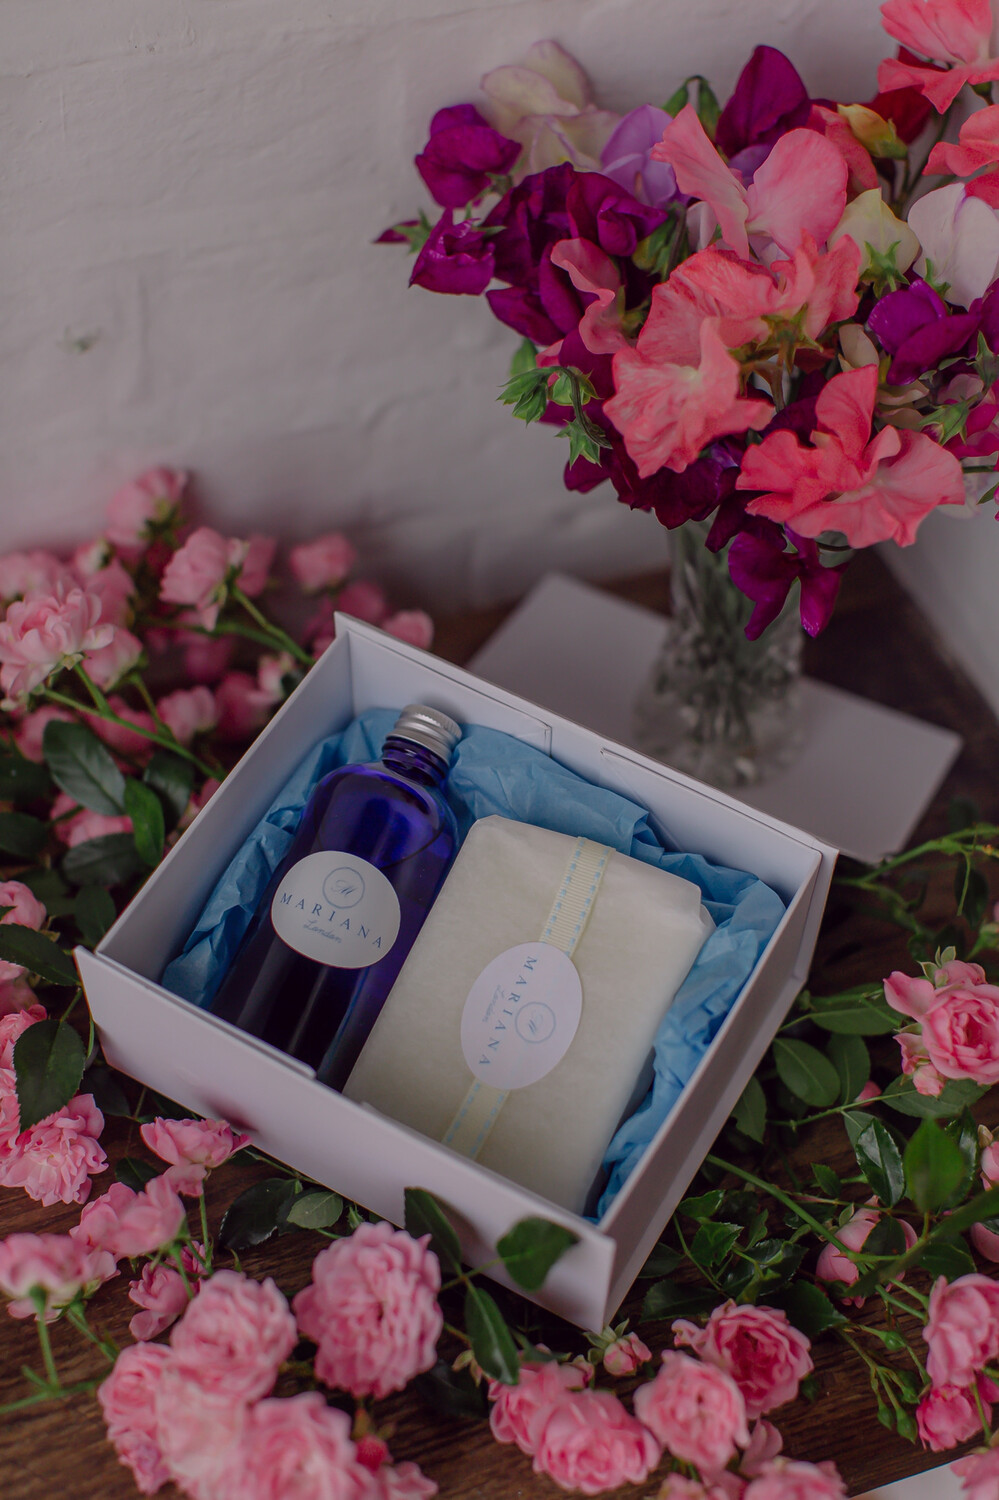 Rose Geranium and Bergamot Bath Oil and 110g Soap in a White Magnetic Gift Box